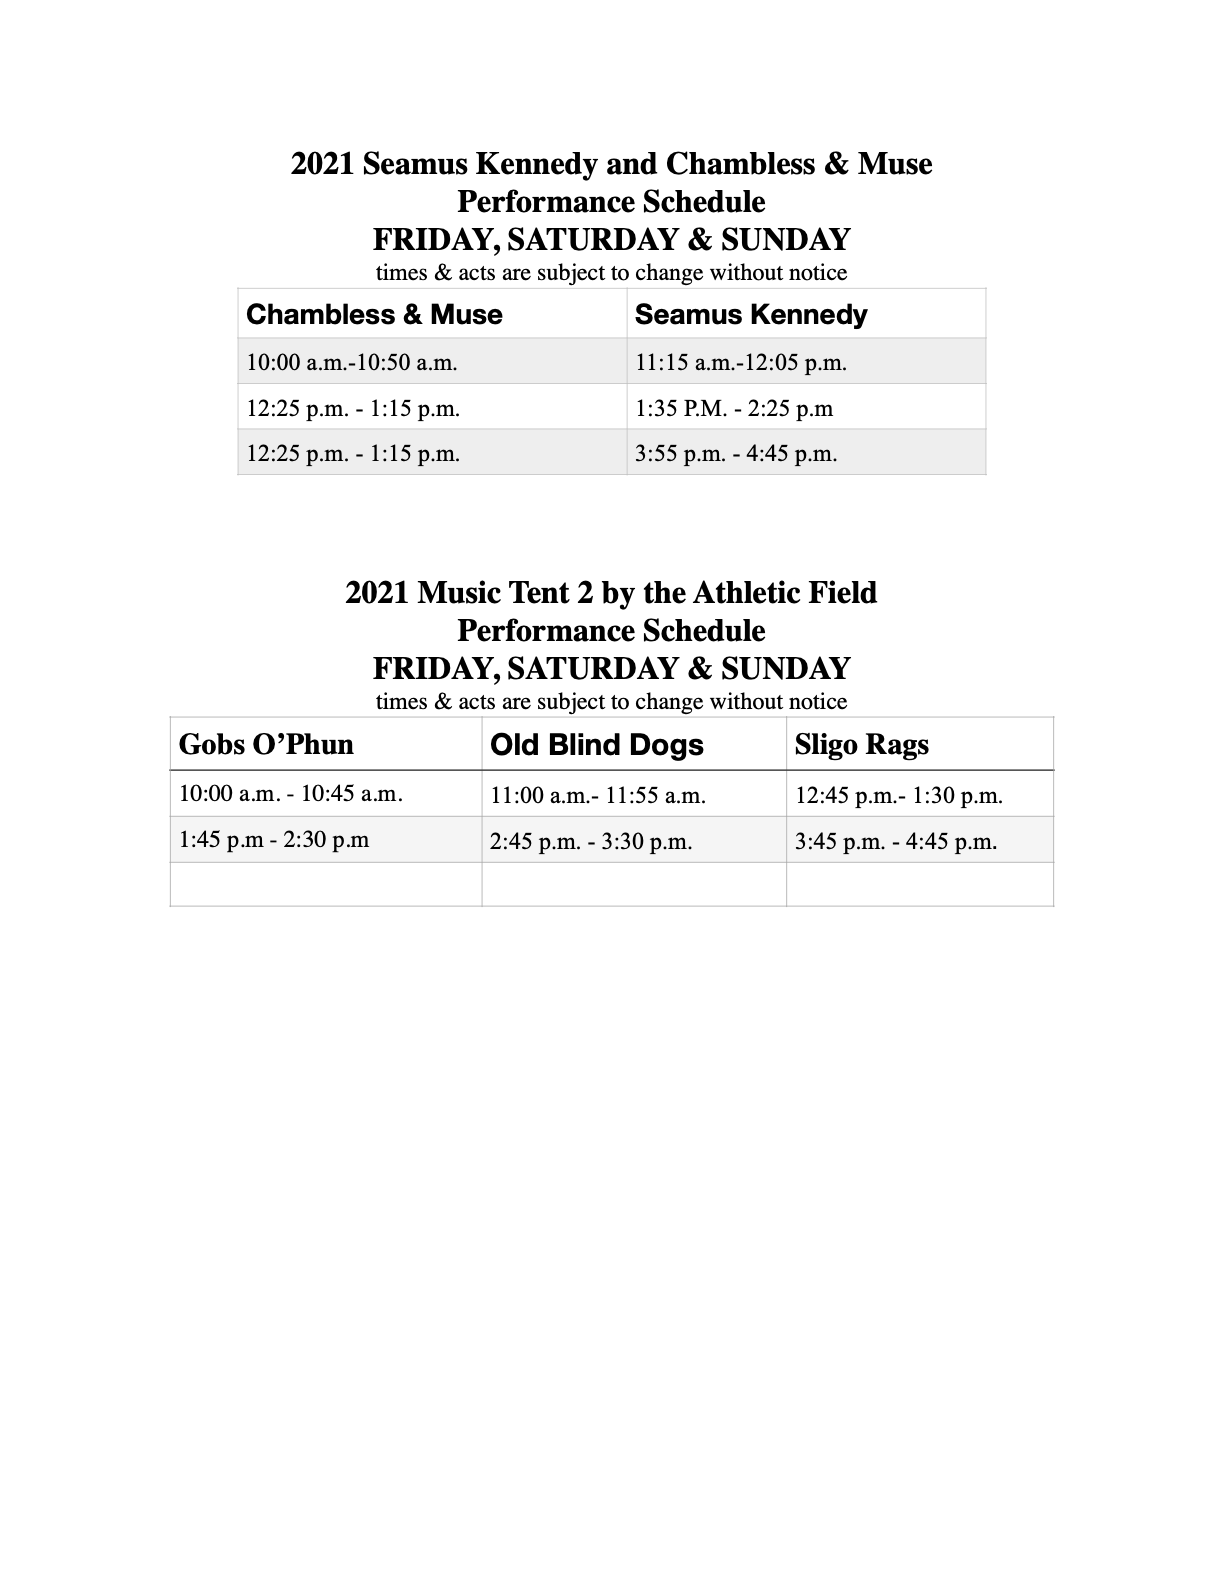 2021: Entertainer Field Schedule 2